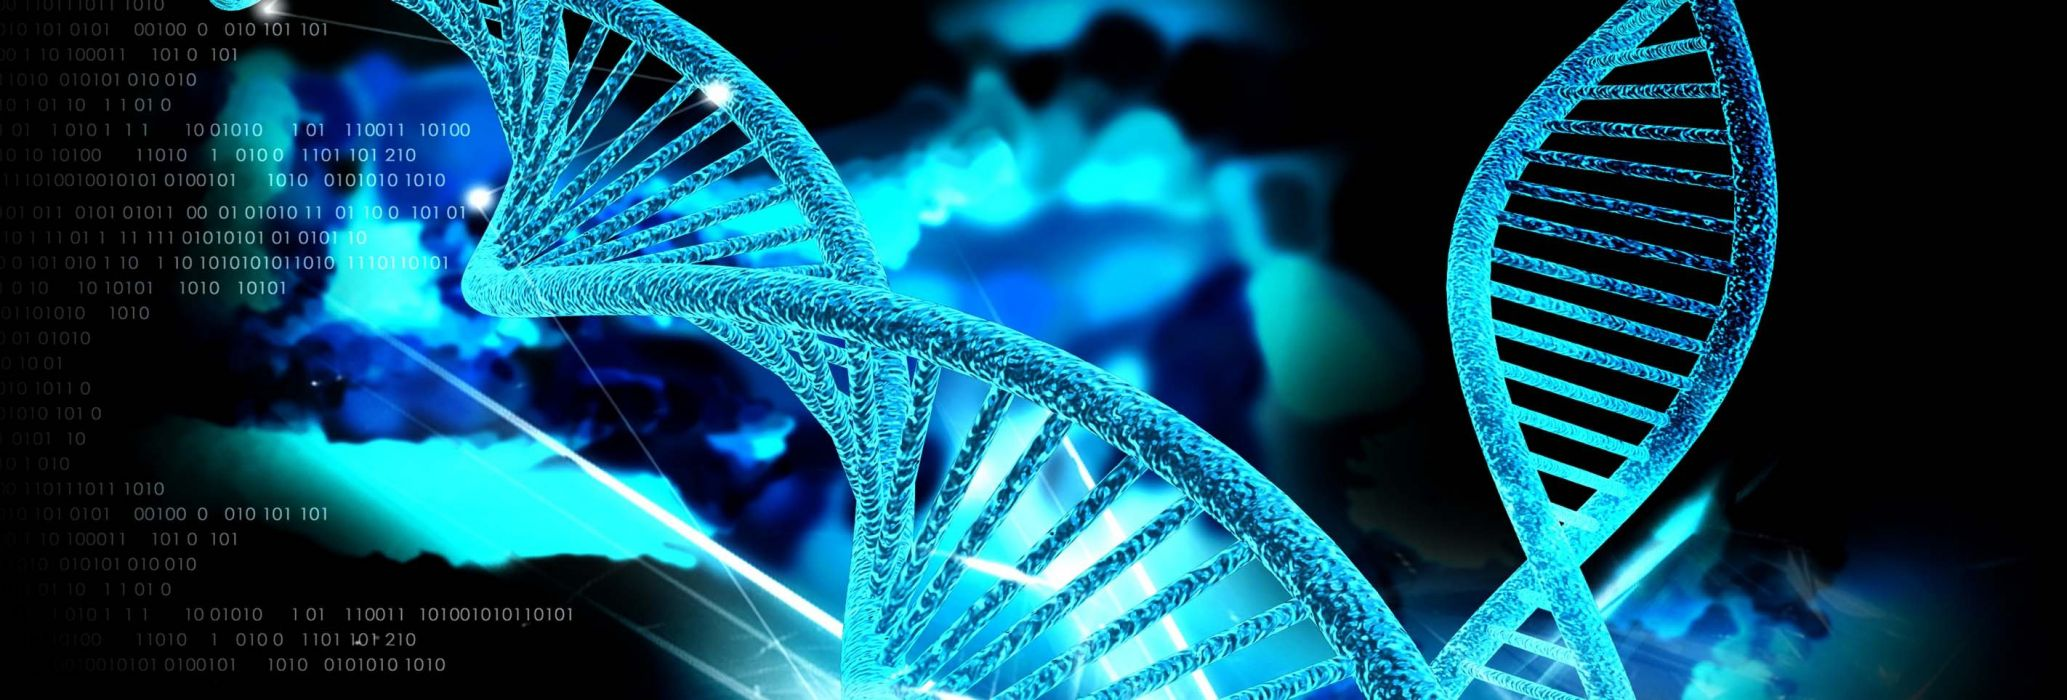 Medical Wallpaper Hd Dna 3 D Structure Molecule Pattern Abstraction Genetic